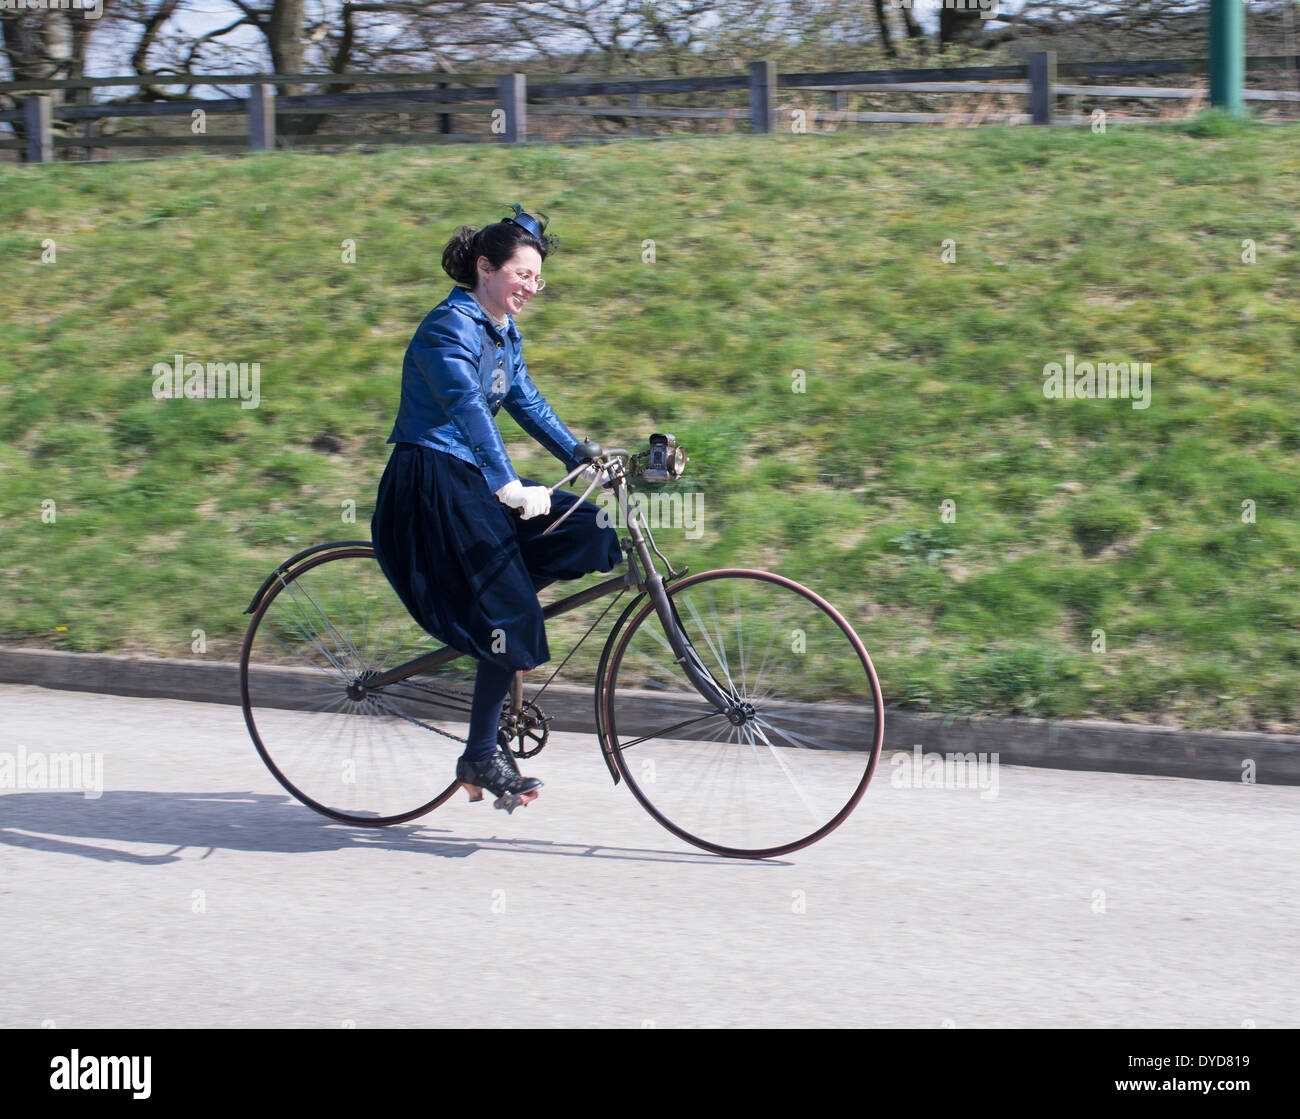 panned-shot-of-smiling-woman-dressed-in-